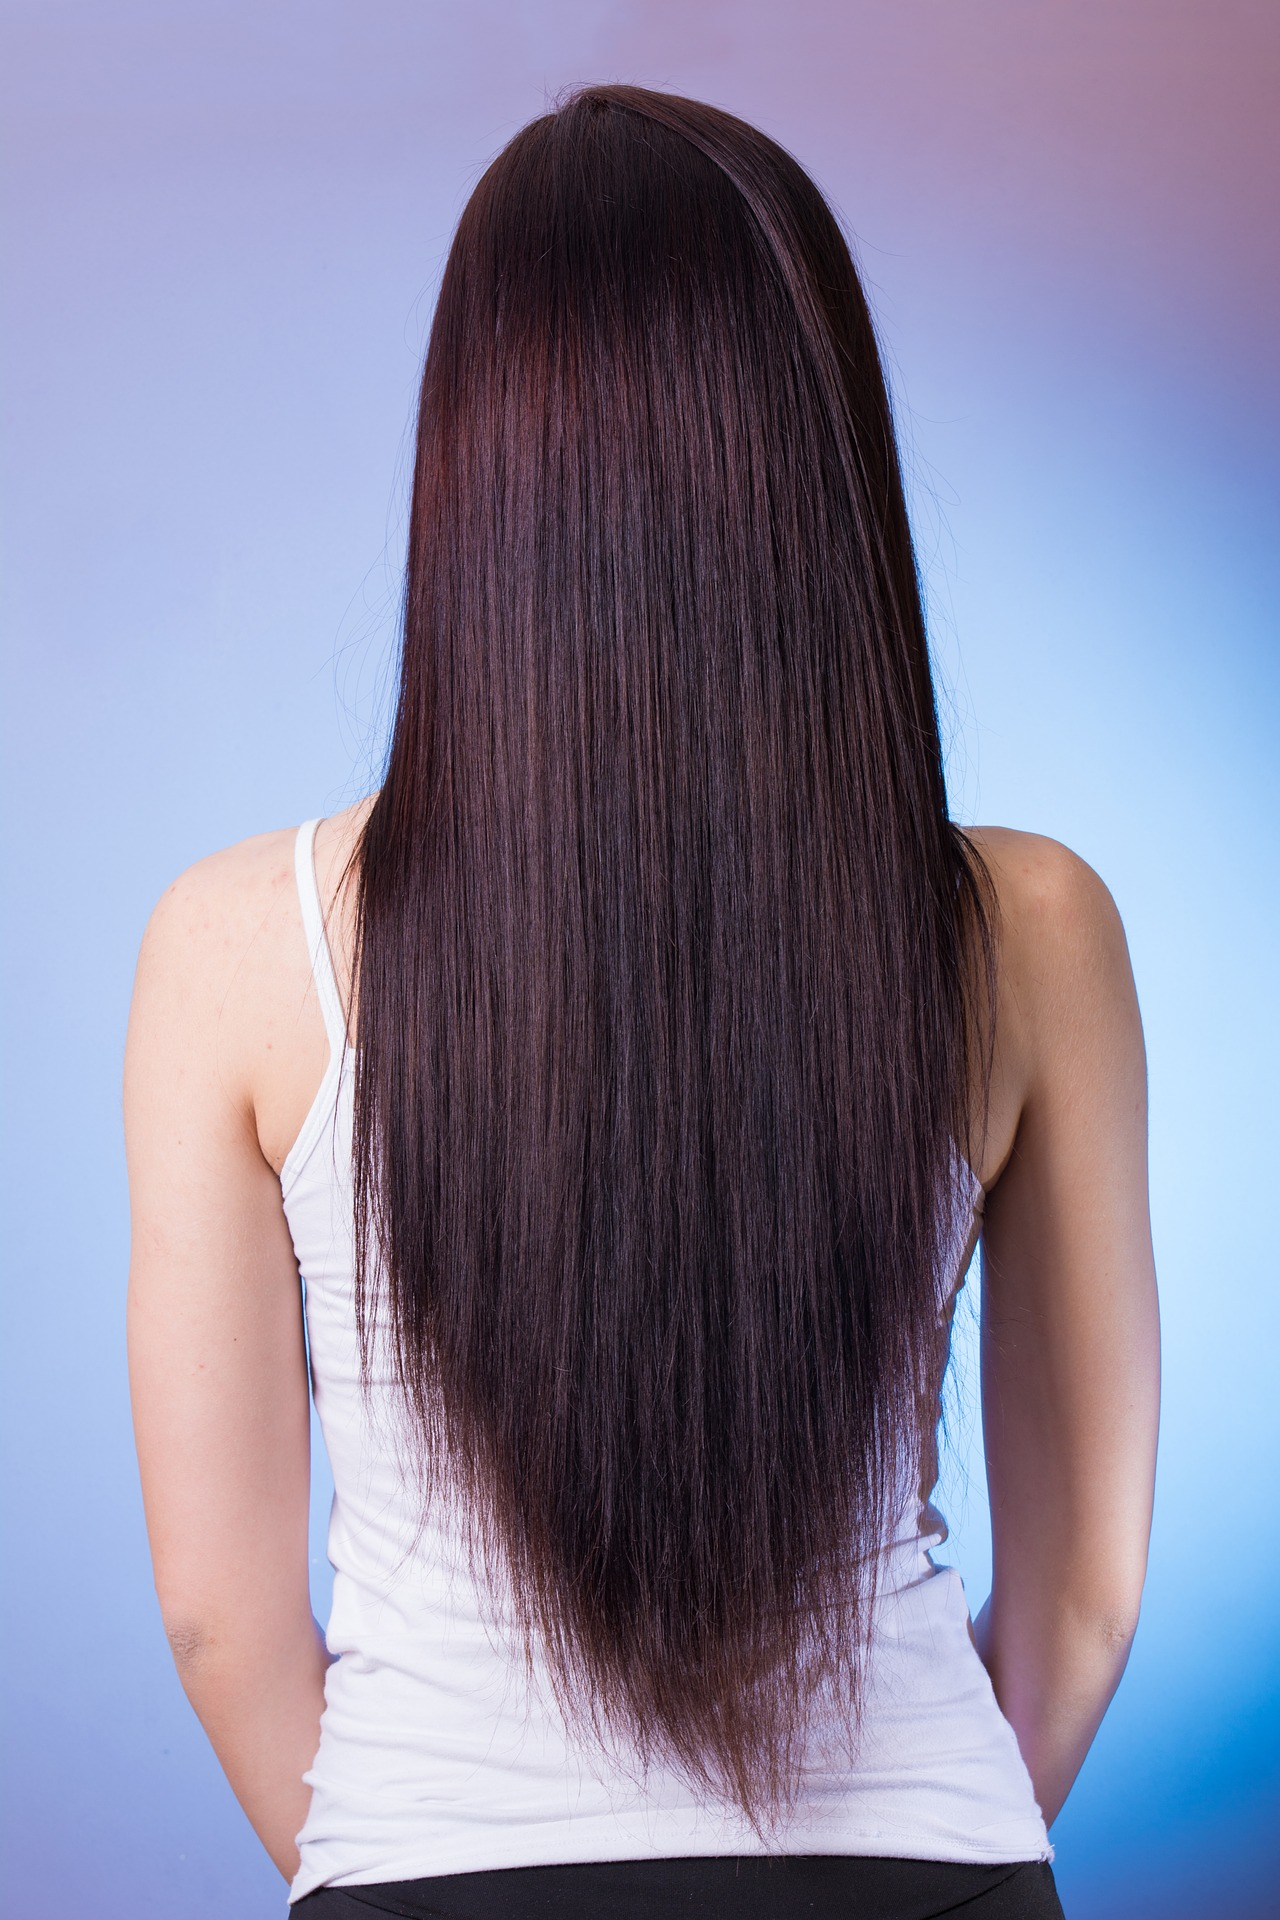 Cismis chemically treated hair care - Rebonding or Smoothing: 6 Facts to know before You Get Chemically Treated Straight Hair